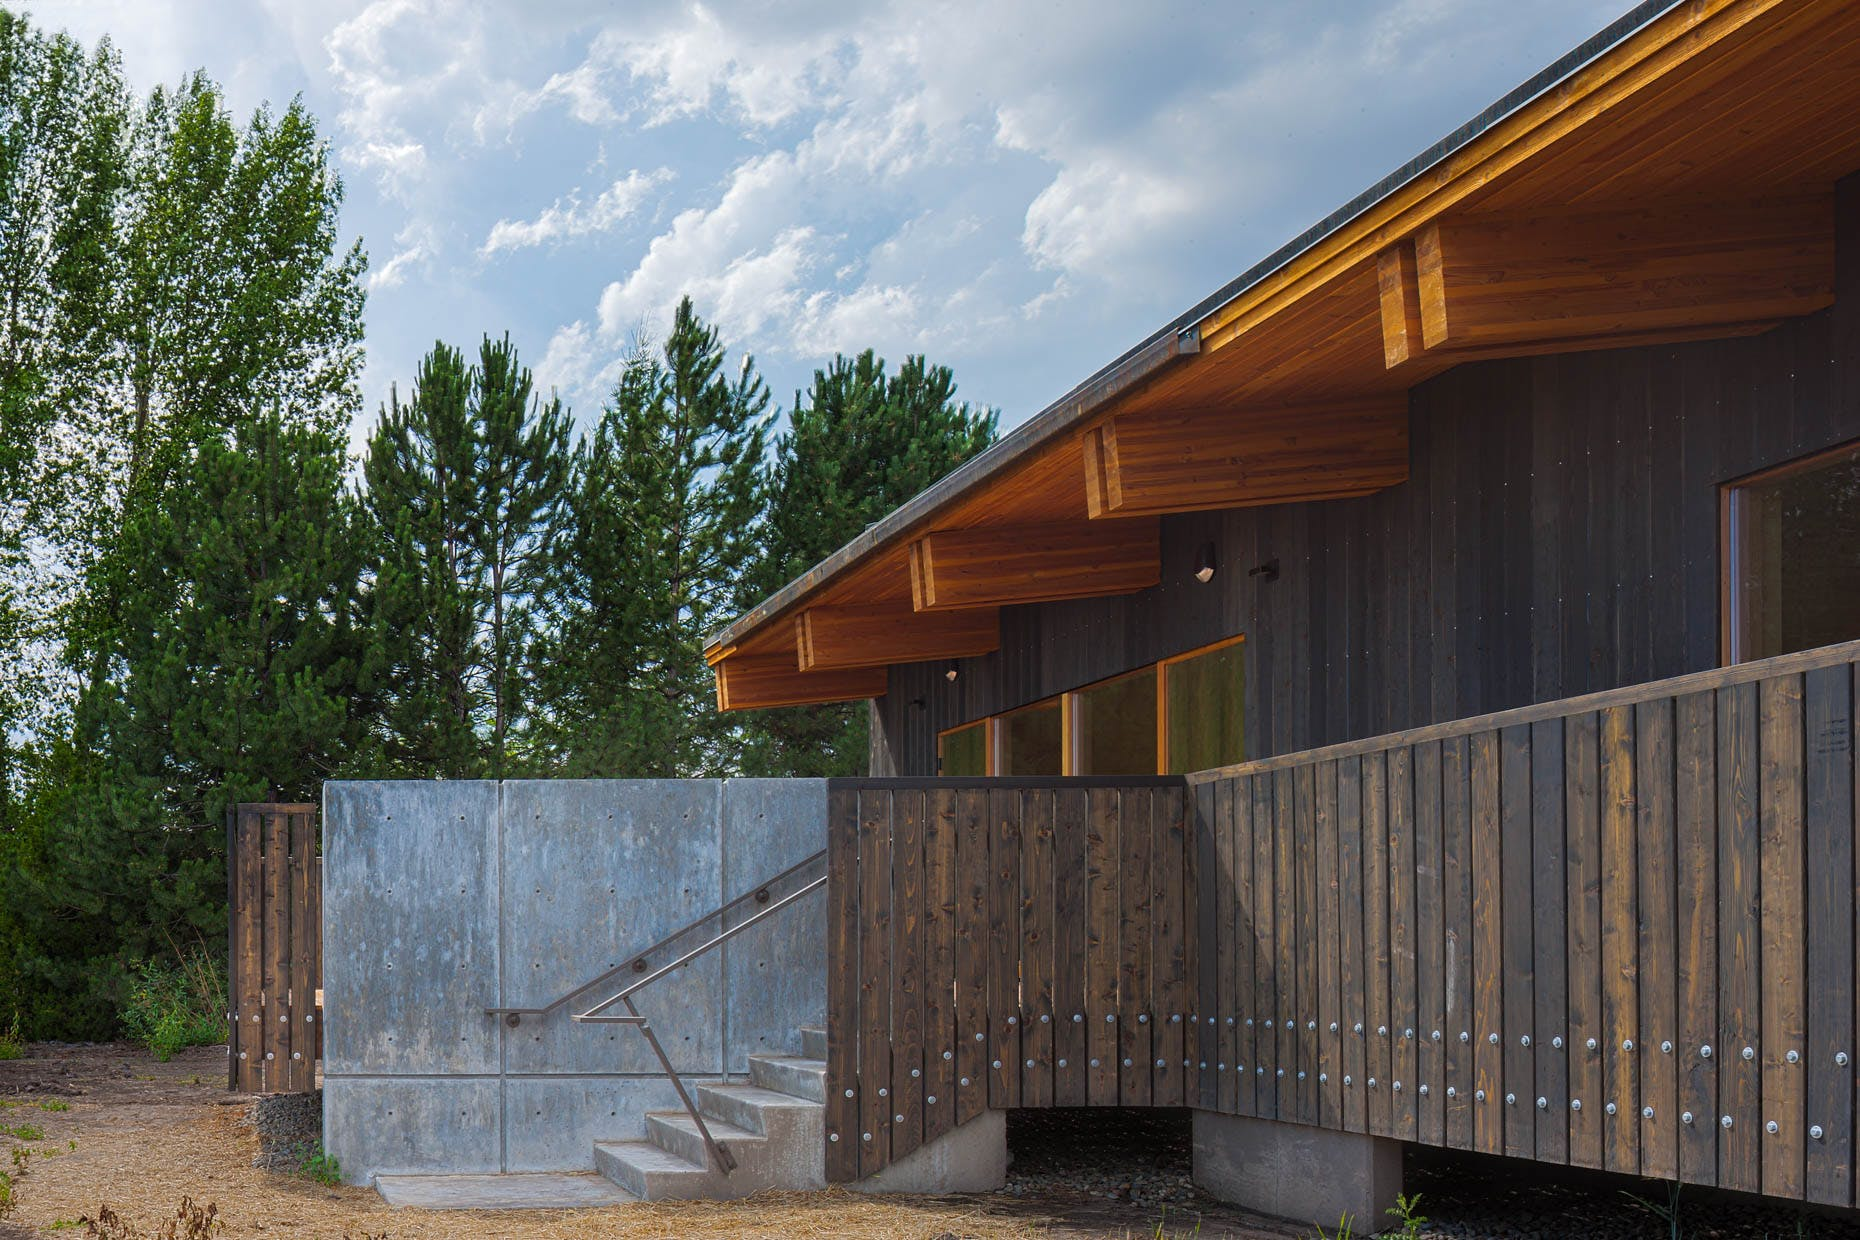 University Of Idaho College Of Natural Resources Patano Studio - University of idaho architecture